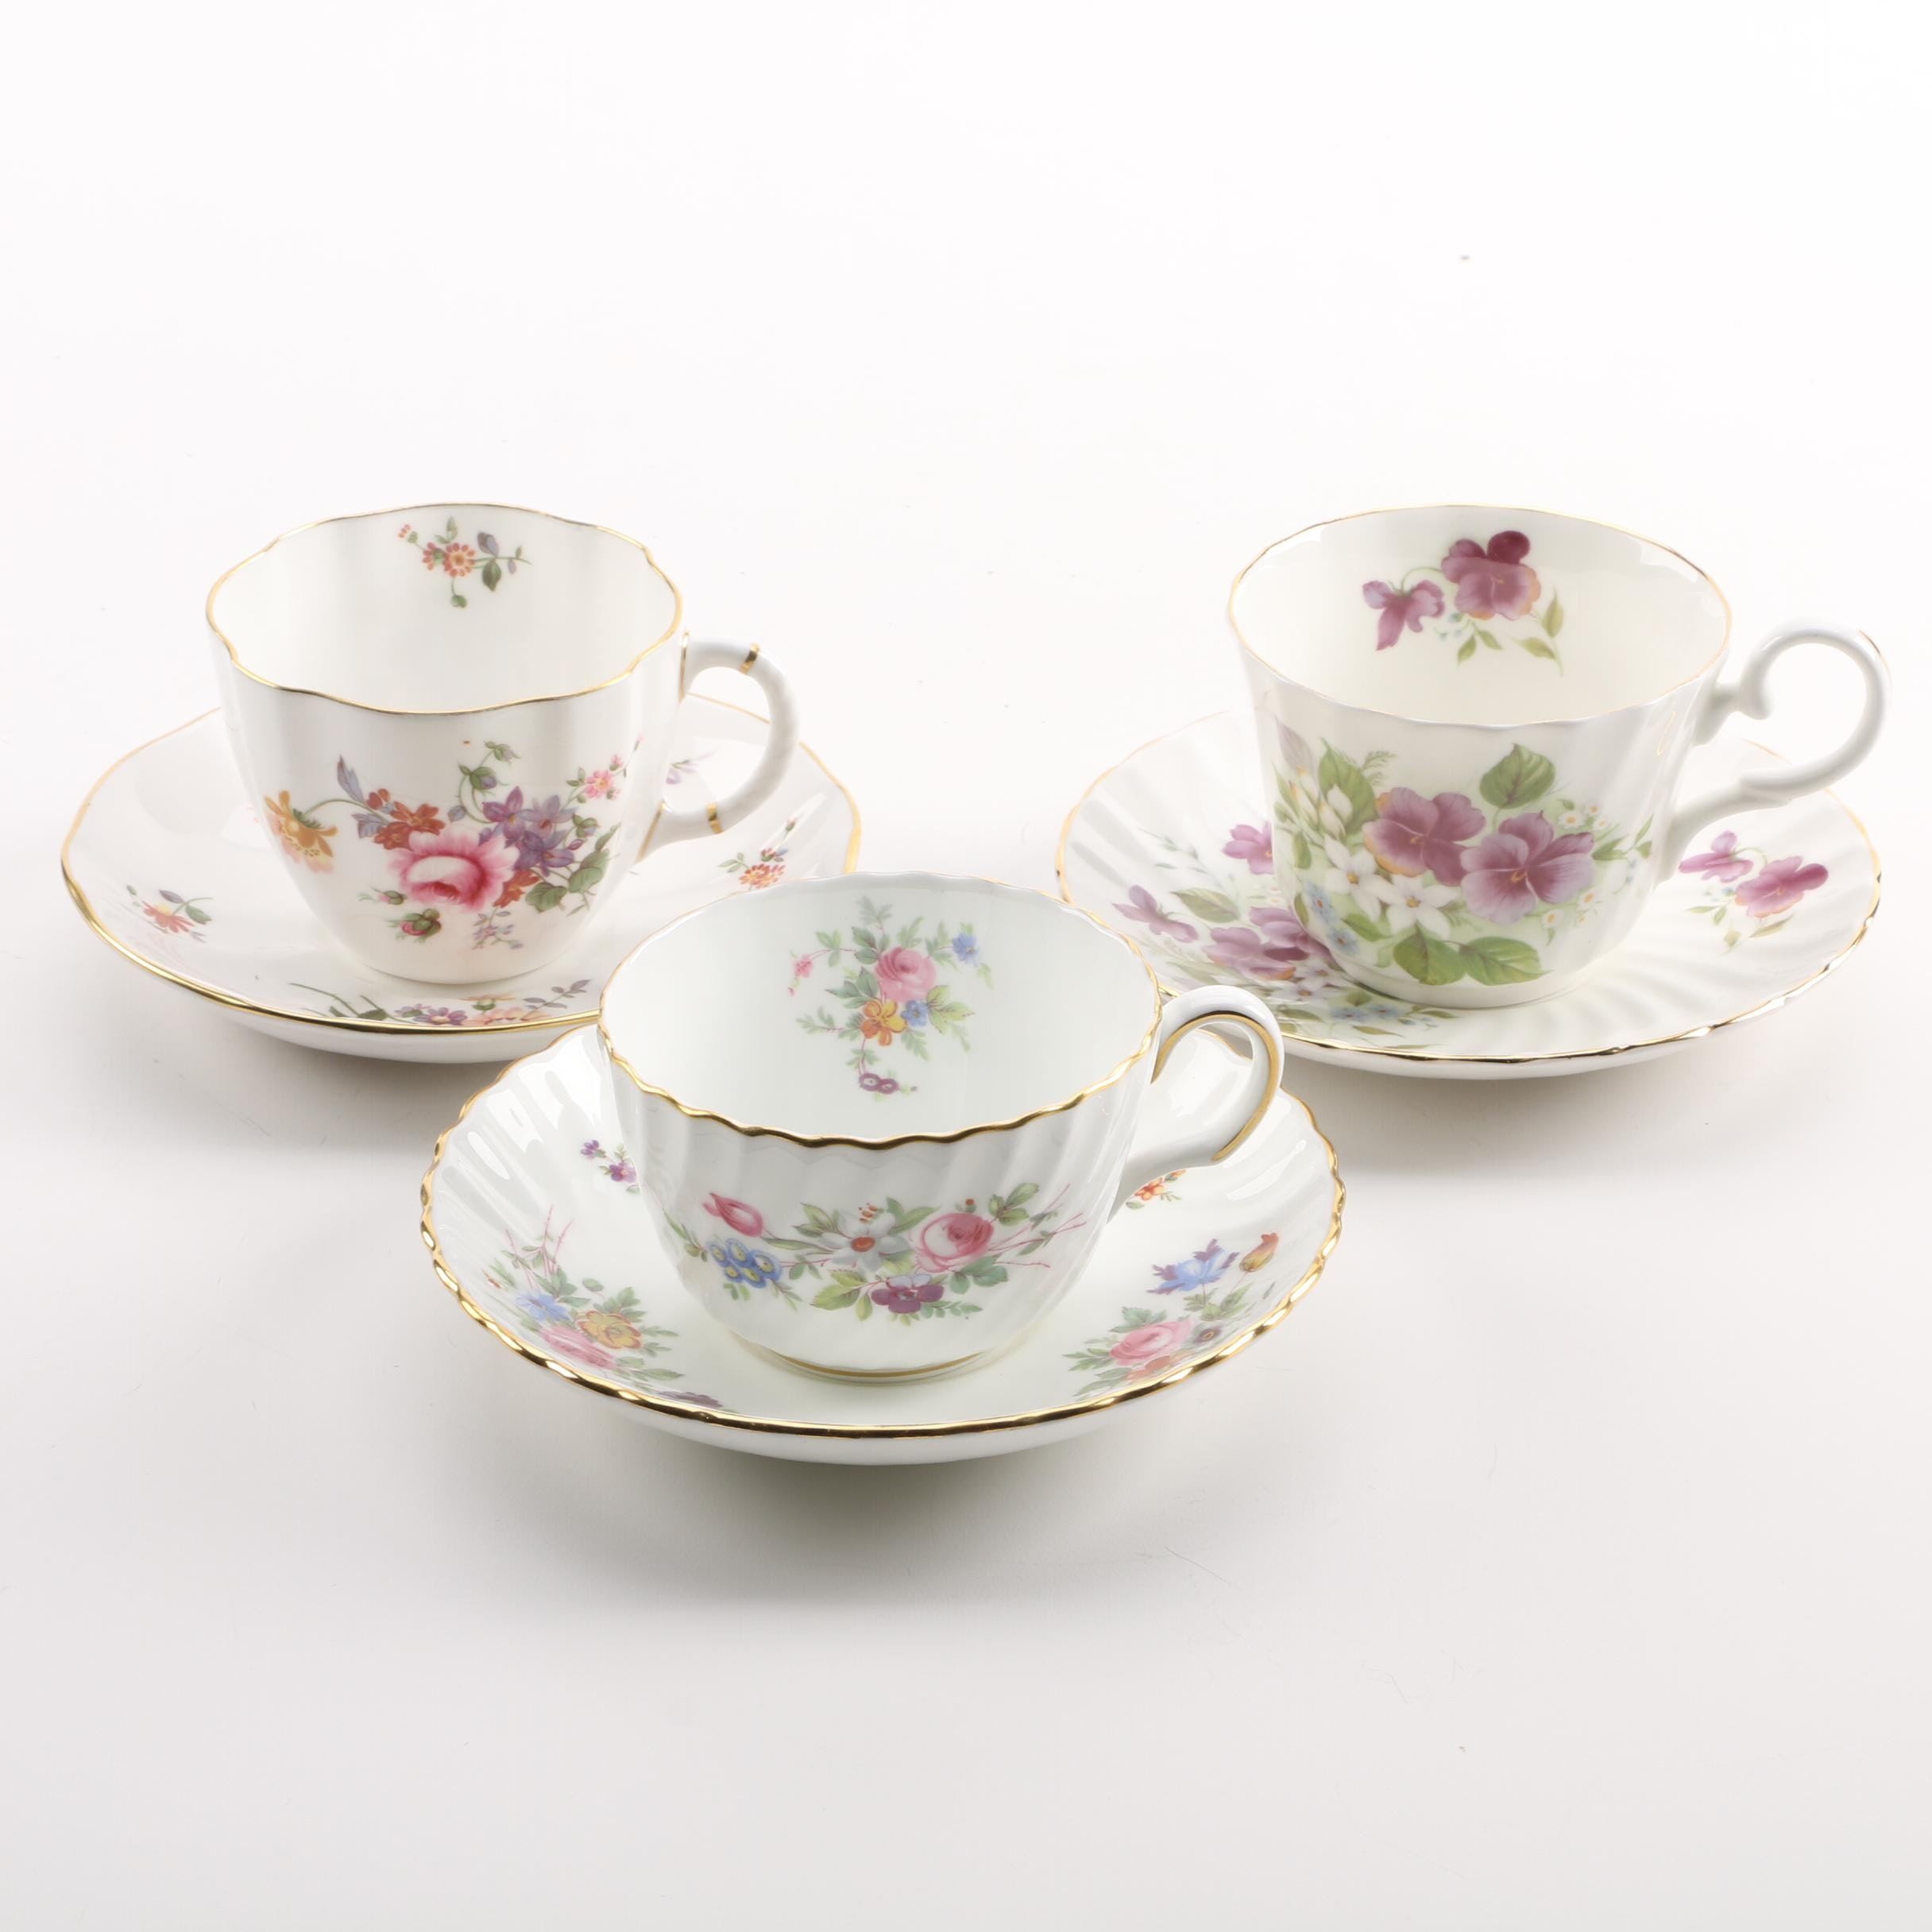 Vintage Porcelain Teacups and Saucers Featuring Derby China